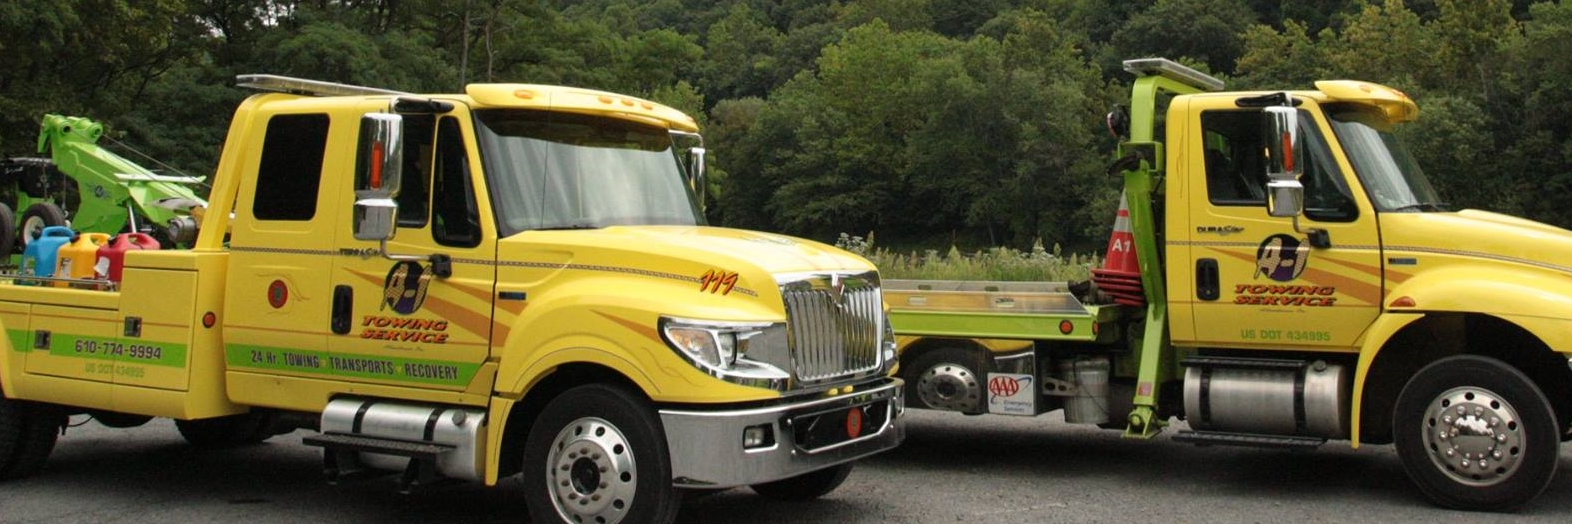 A-1 Towing Service Towing.com Profile Banner